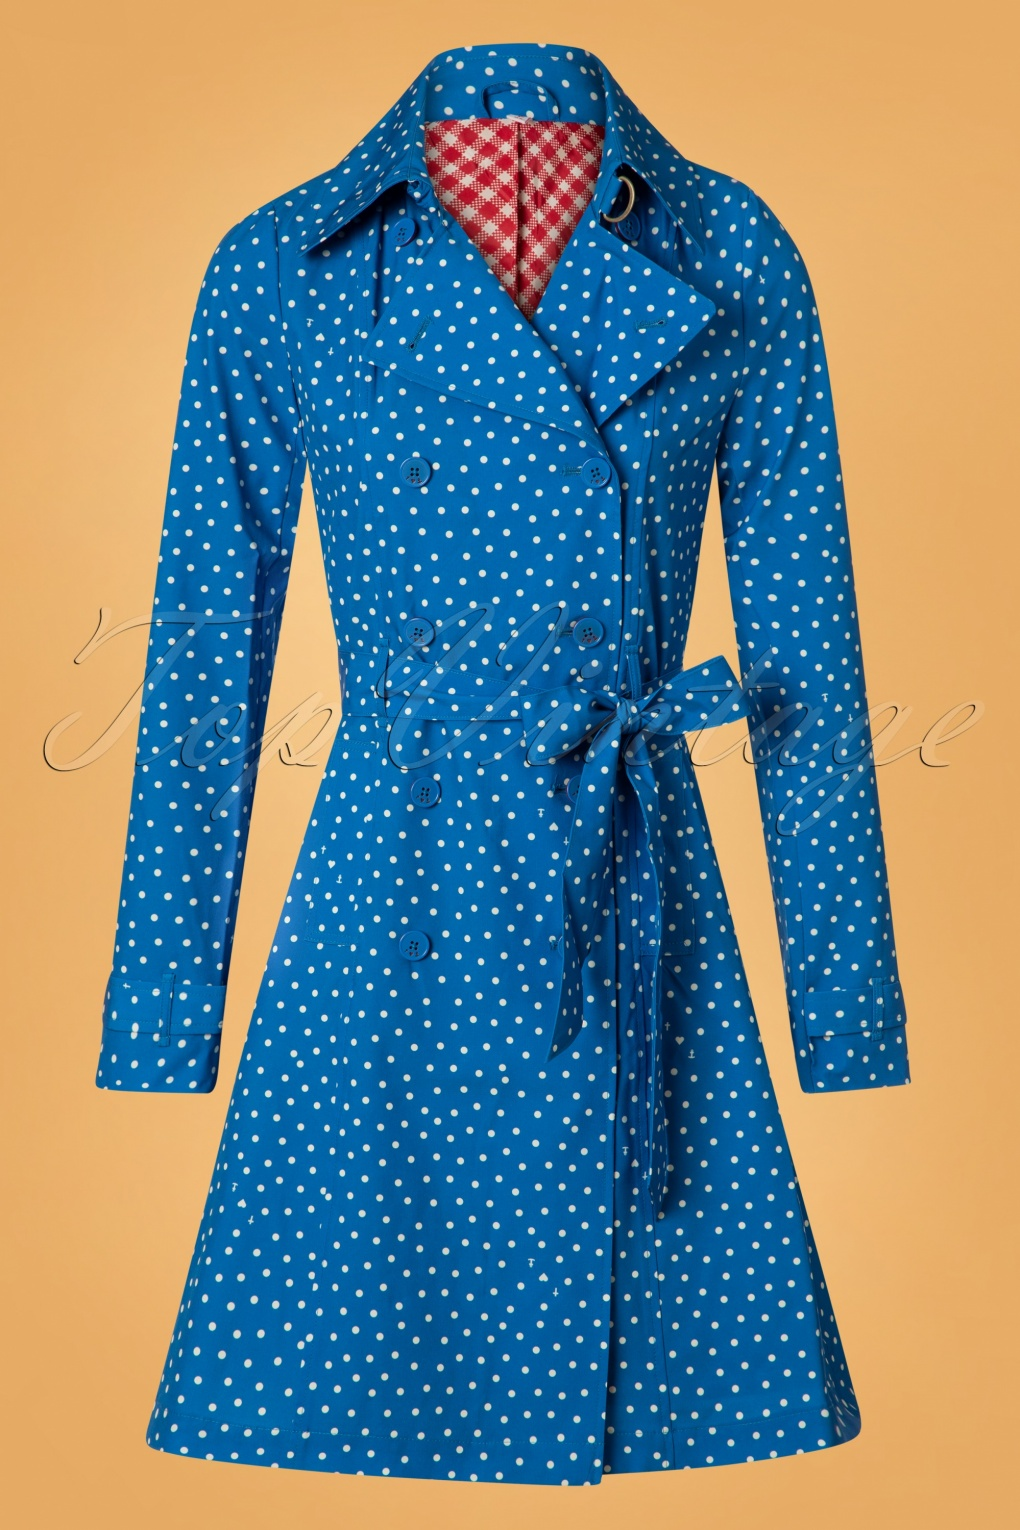 Vintage Coats & Jackets | Retro Coats and Jackets 60s Casablanca Souvenir Trench Coat in Dot and Anchor Blue £142.84 AT vintagedancer.com